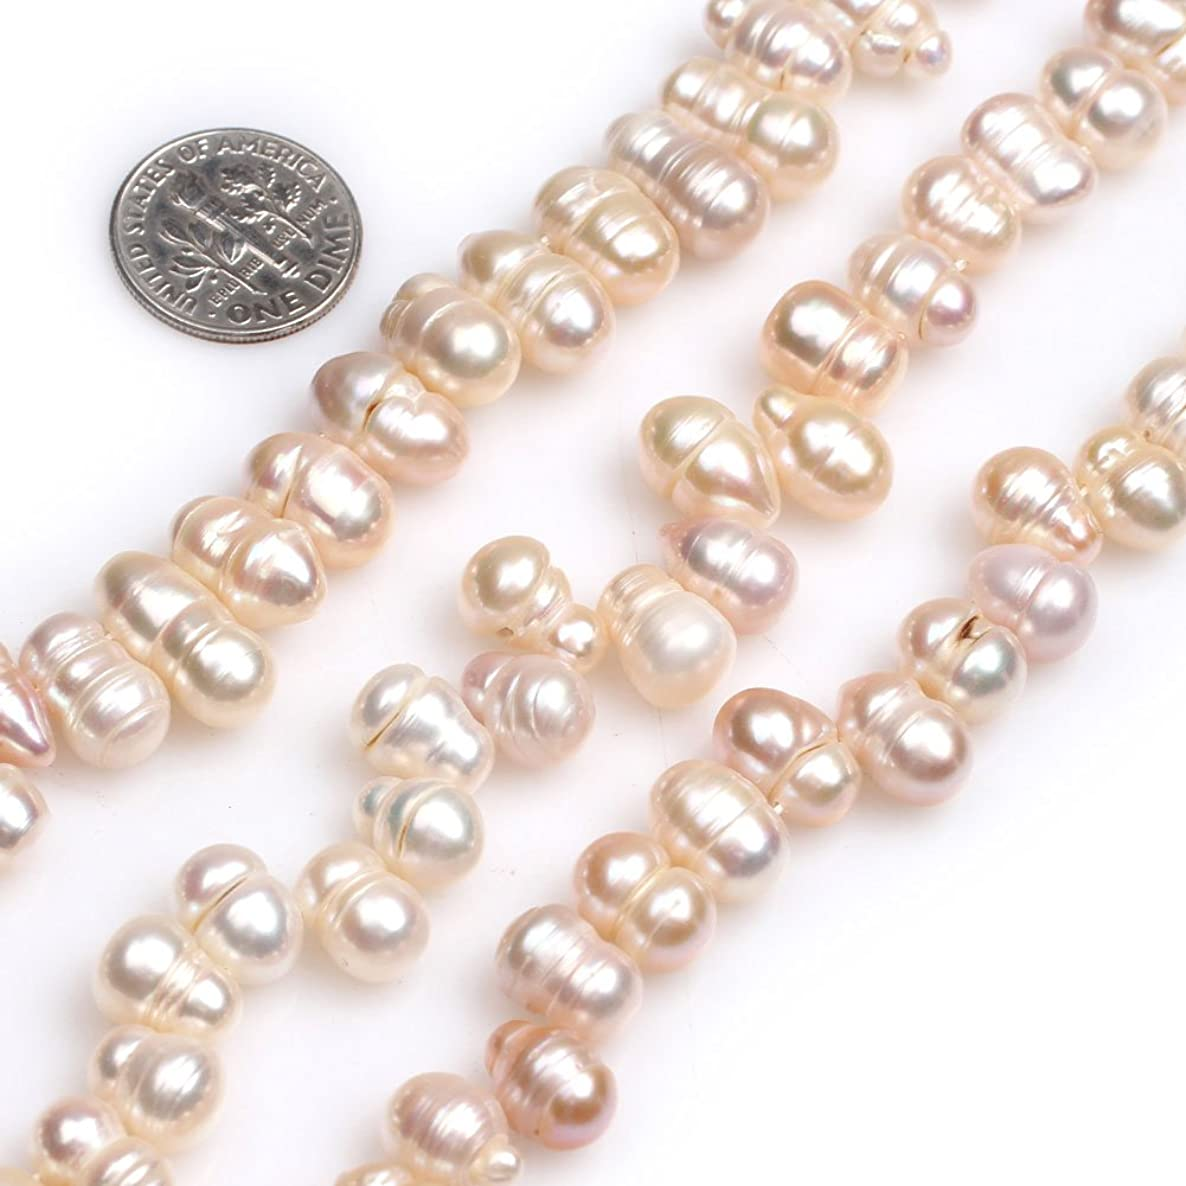 GEM-inside 8x10mm White Drilled Pearls Loose Pearls Strand Beads for Jewelry Making Jewelry Beading Supplies for Women